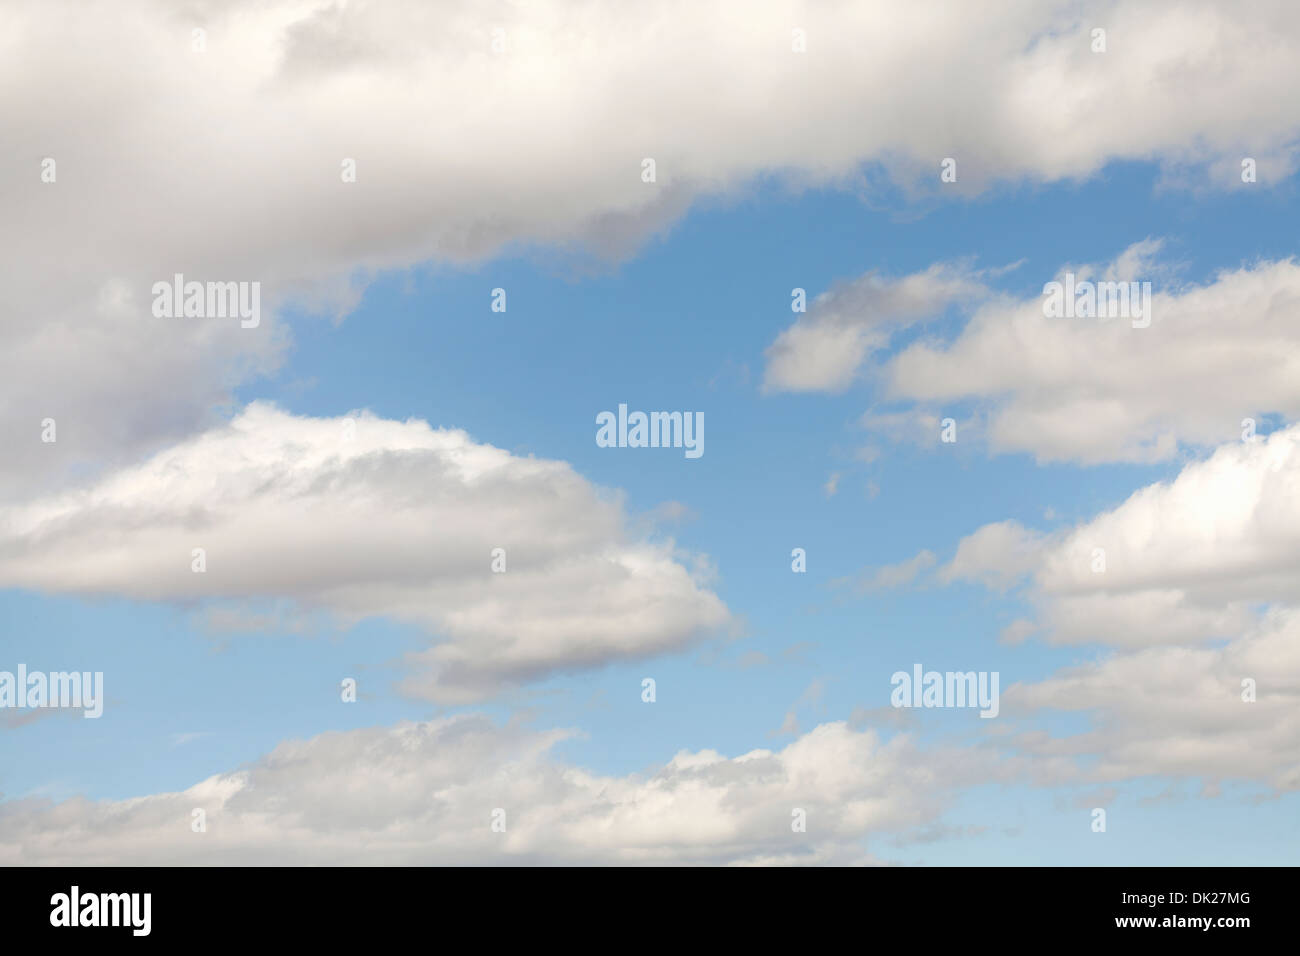 Fluffy white clouds in sunny blue sky - Stock Image